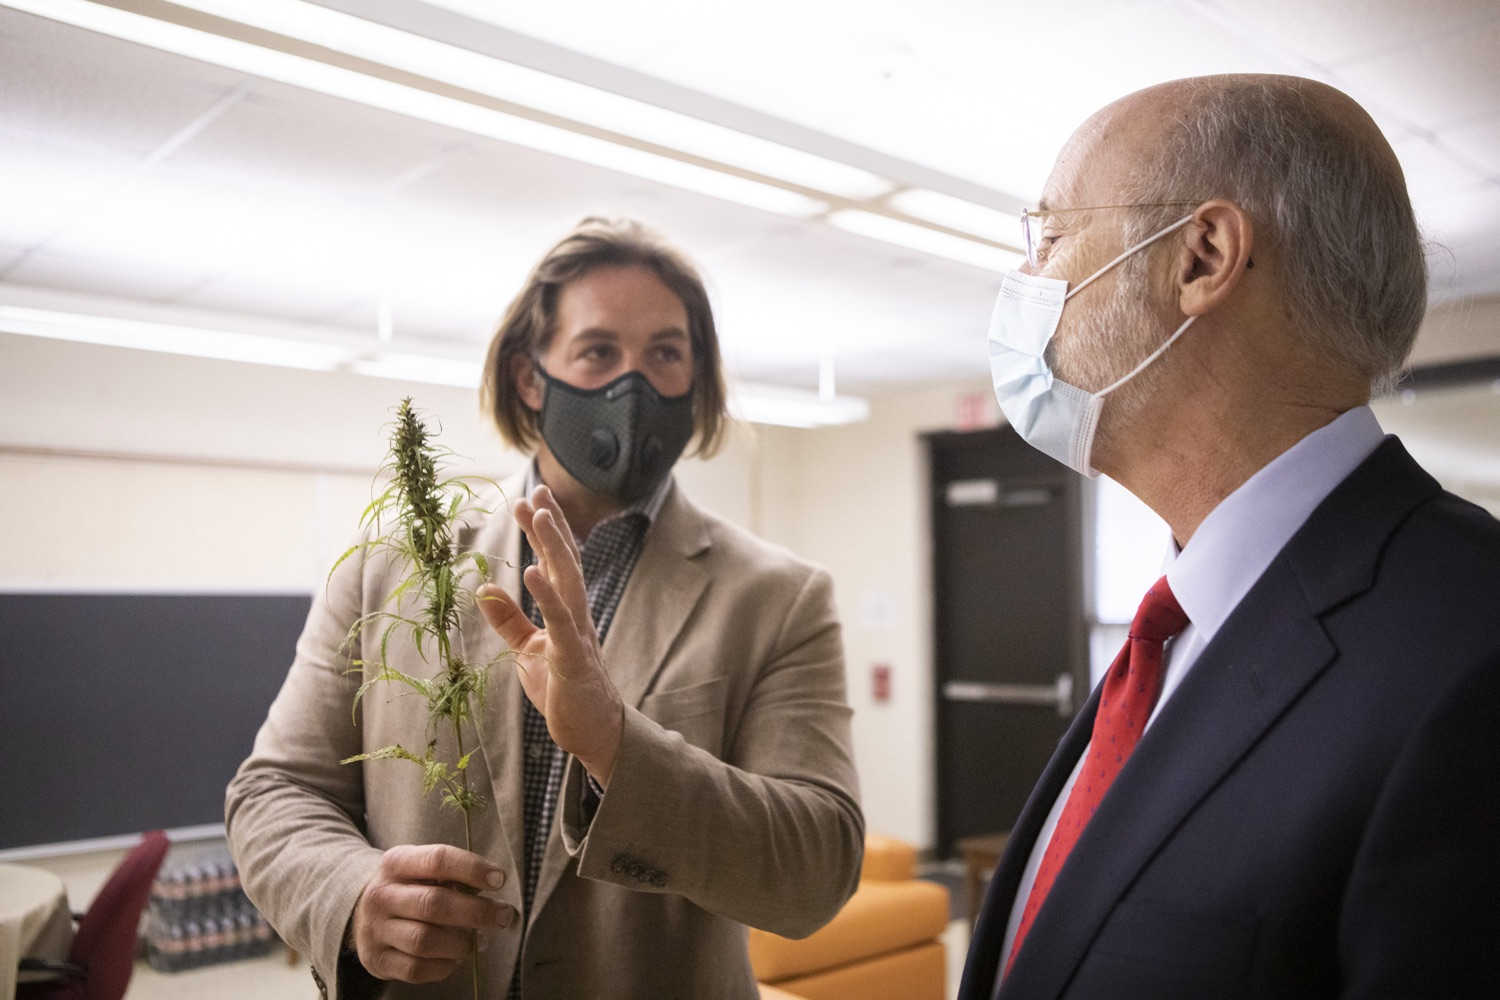 "<a href=""https://filesource.wostreaming.net/commonwealthofpa/photo/18310_gov_adult_use_cannabis_dz_003.jpg"" target=""_blank"">⇣ Download Photo<br></a>Eric Titus White, hemp farmer showing Governor Tom Wolf a cutting of industrial hemp.  Governor Tom Wolf visited The Mountain Center in Tobyhanna, Monroe County today to talk about the economic growth potential and restorative justice benefits of legalizing adult-use cannabis, something the state General Assembly has not yet done despite multiple requests from the governor and Lieutenant Governor John Fetterman to take up legislation this fall.  Tobyhanna, PA  October 13, 2020"